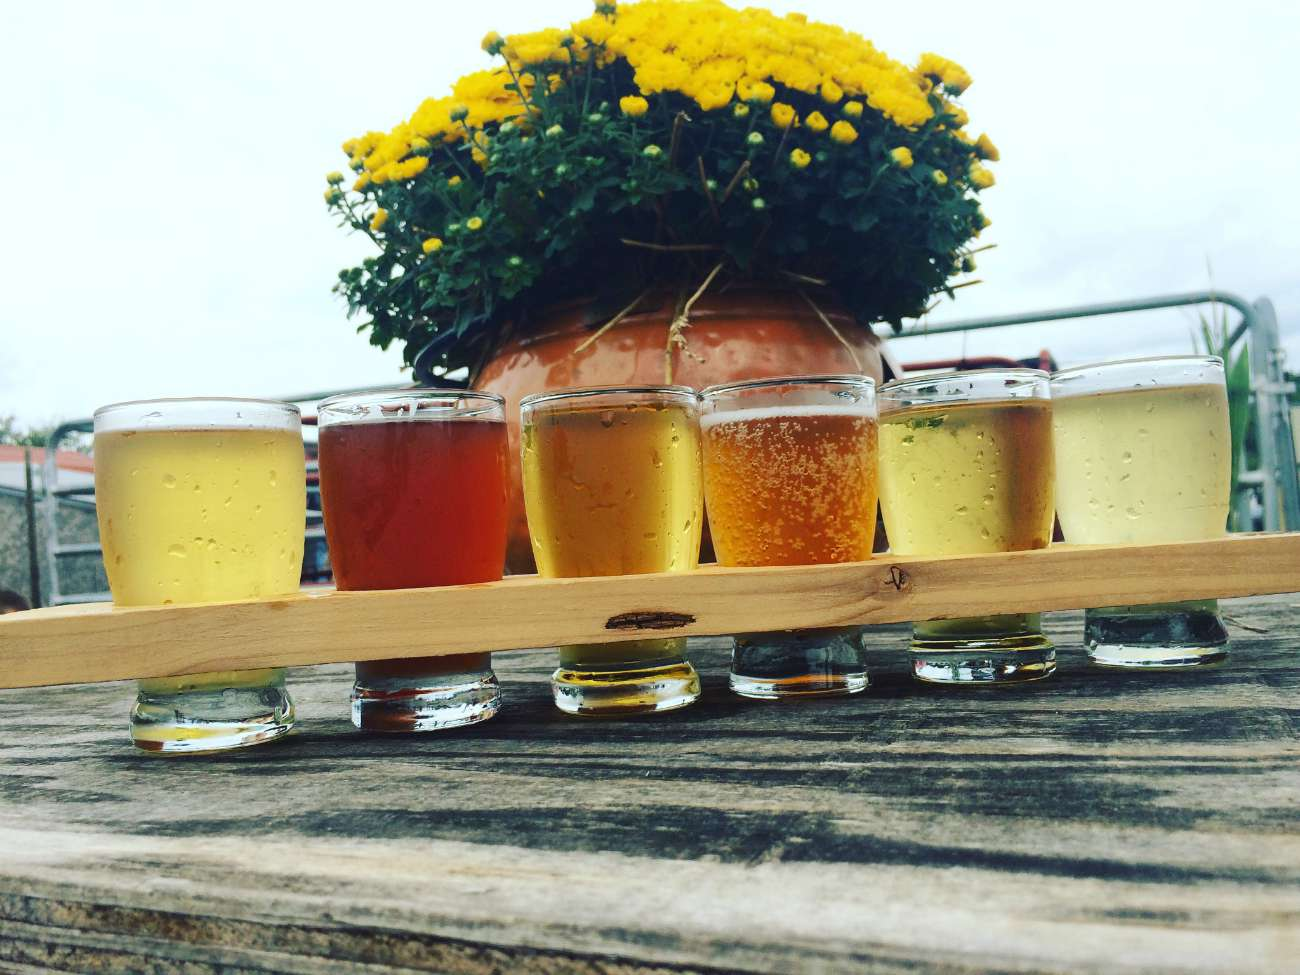 Windy Hill Orchard: Yes to hard cider and doughnuts, no to apples